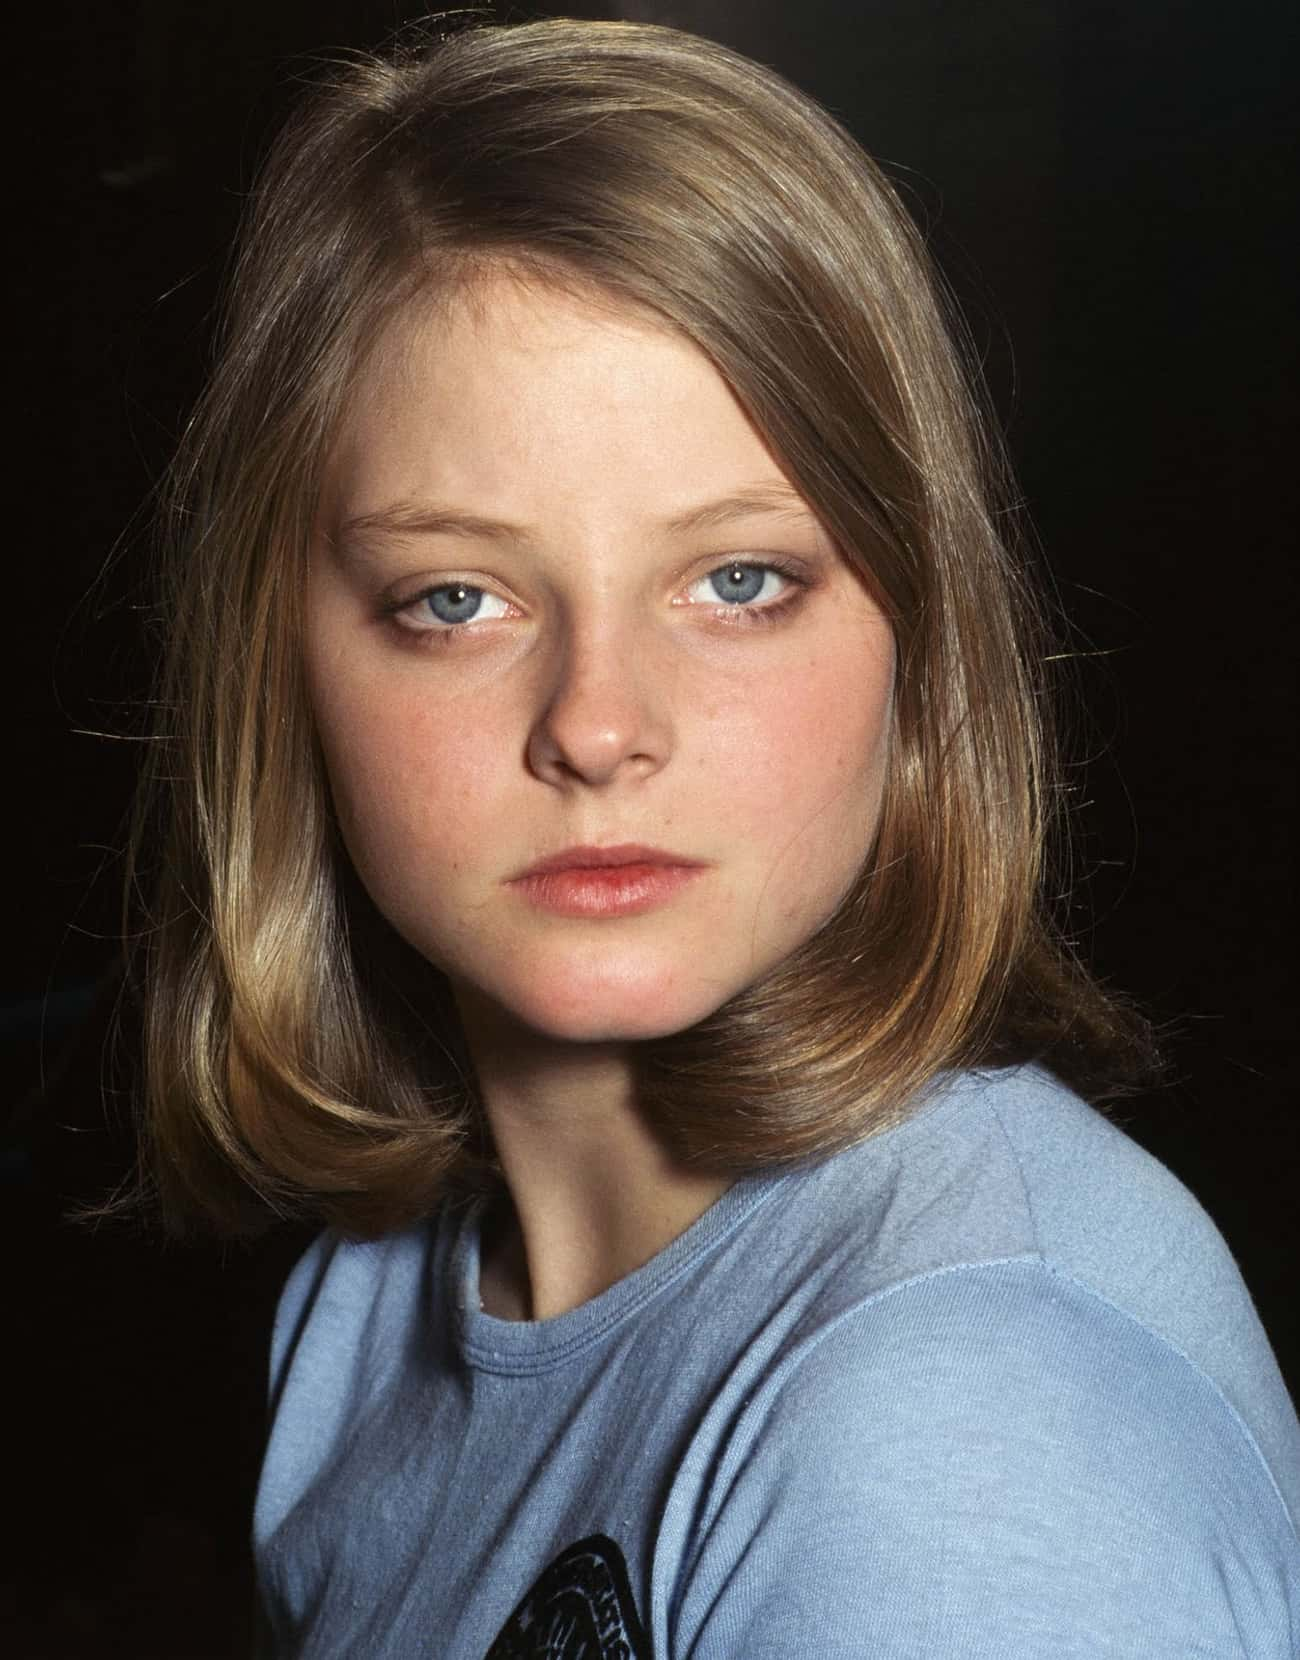 Young Jodie Foster in Blue Shi is listed (or ranked) 4 on the list 20 Insanely Cute Pictures of Young Jodie Foster